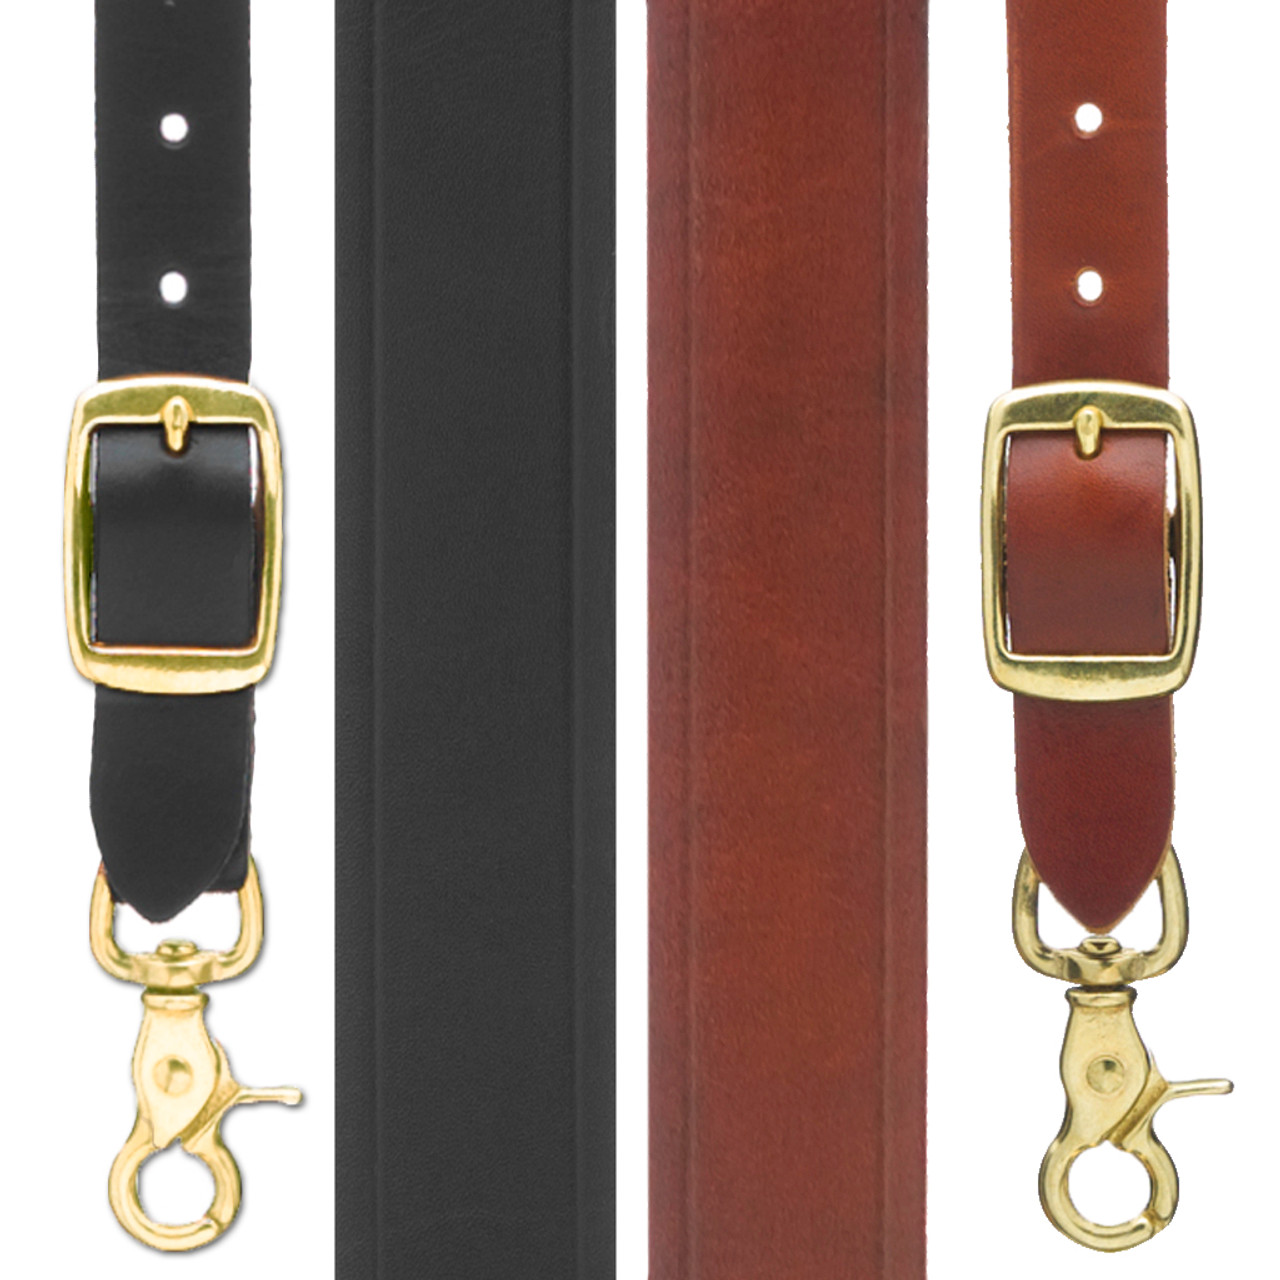 9bcfd7a31 Handcrafted Western Leather Suspenders - Plain Crease - Trigger Snap ...